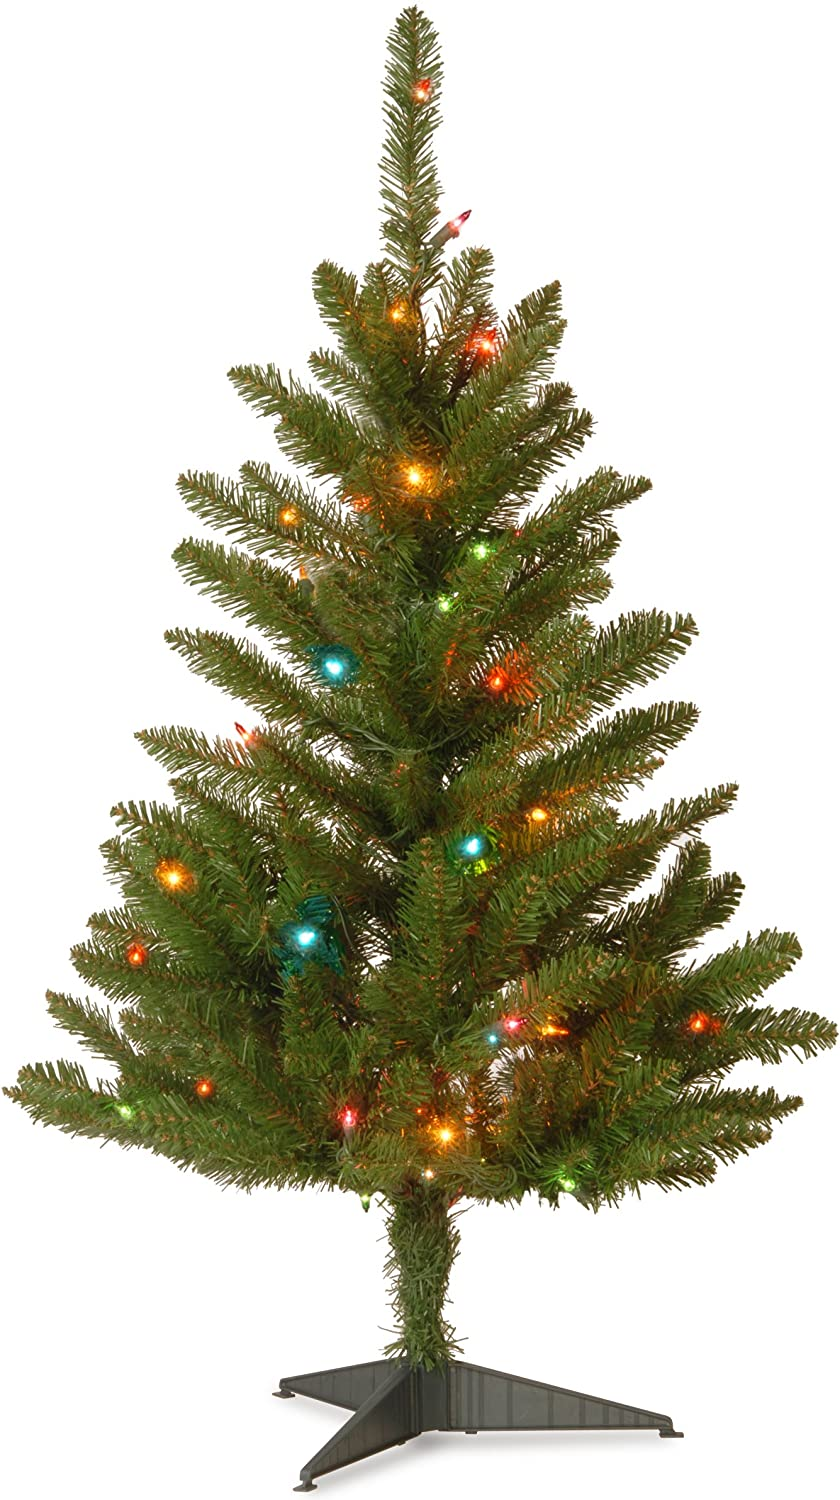 National Tree Company Pre-lit Artificial Mini Christmas Tree | Includes Multi-Color Lights and Stand | Kingswood Fir Pencil - 3 ft